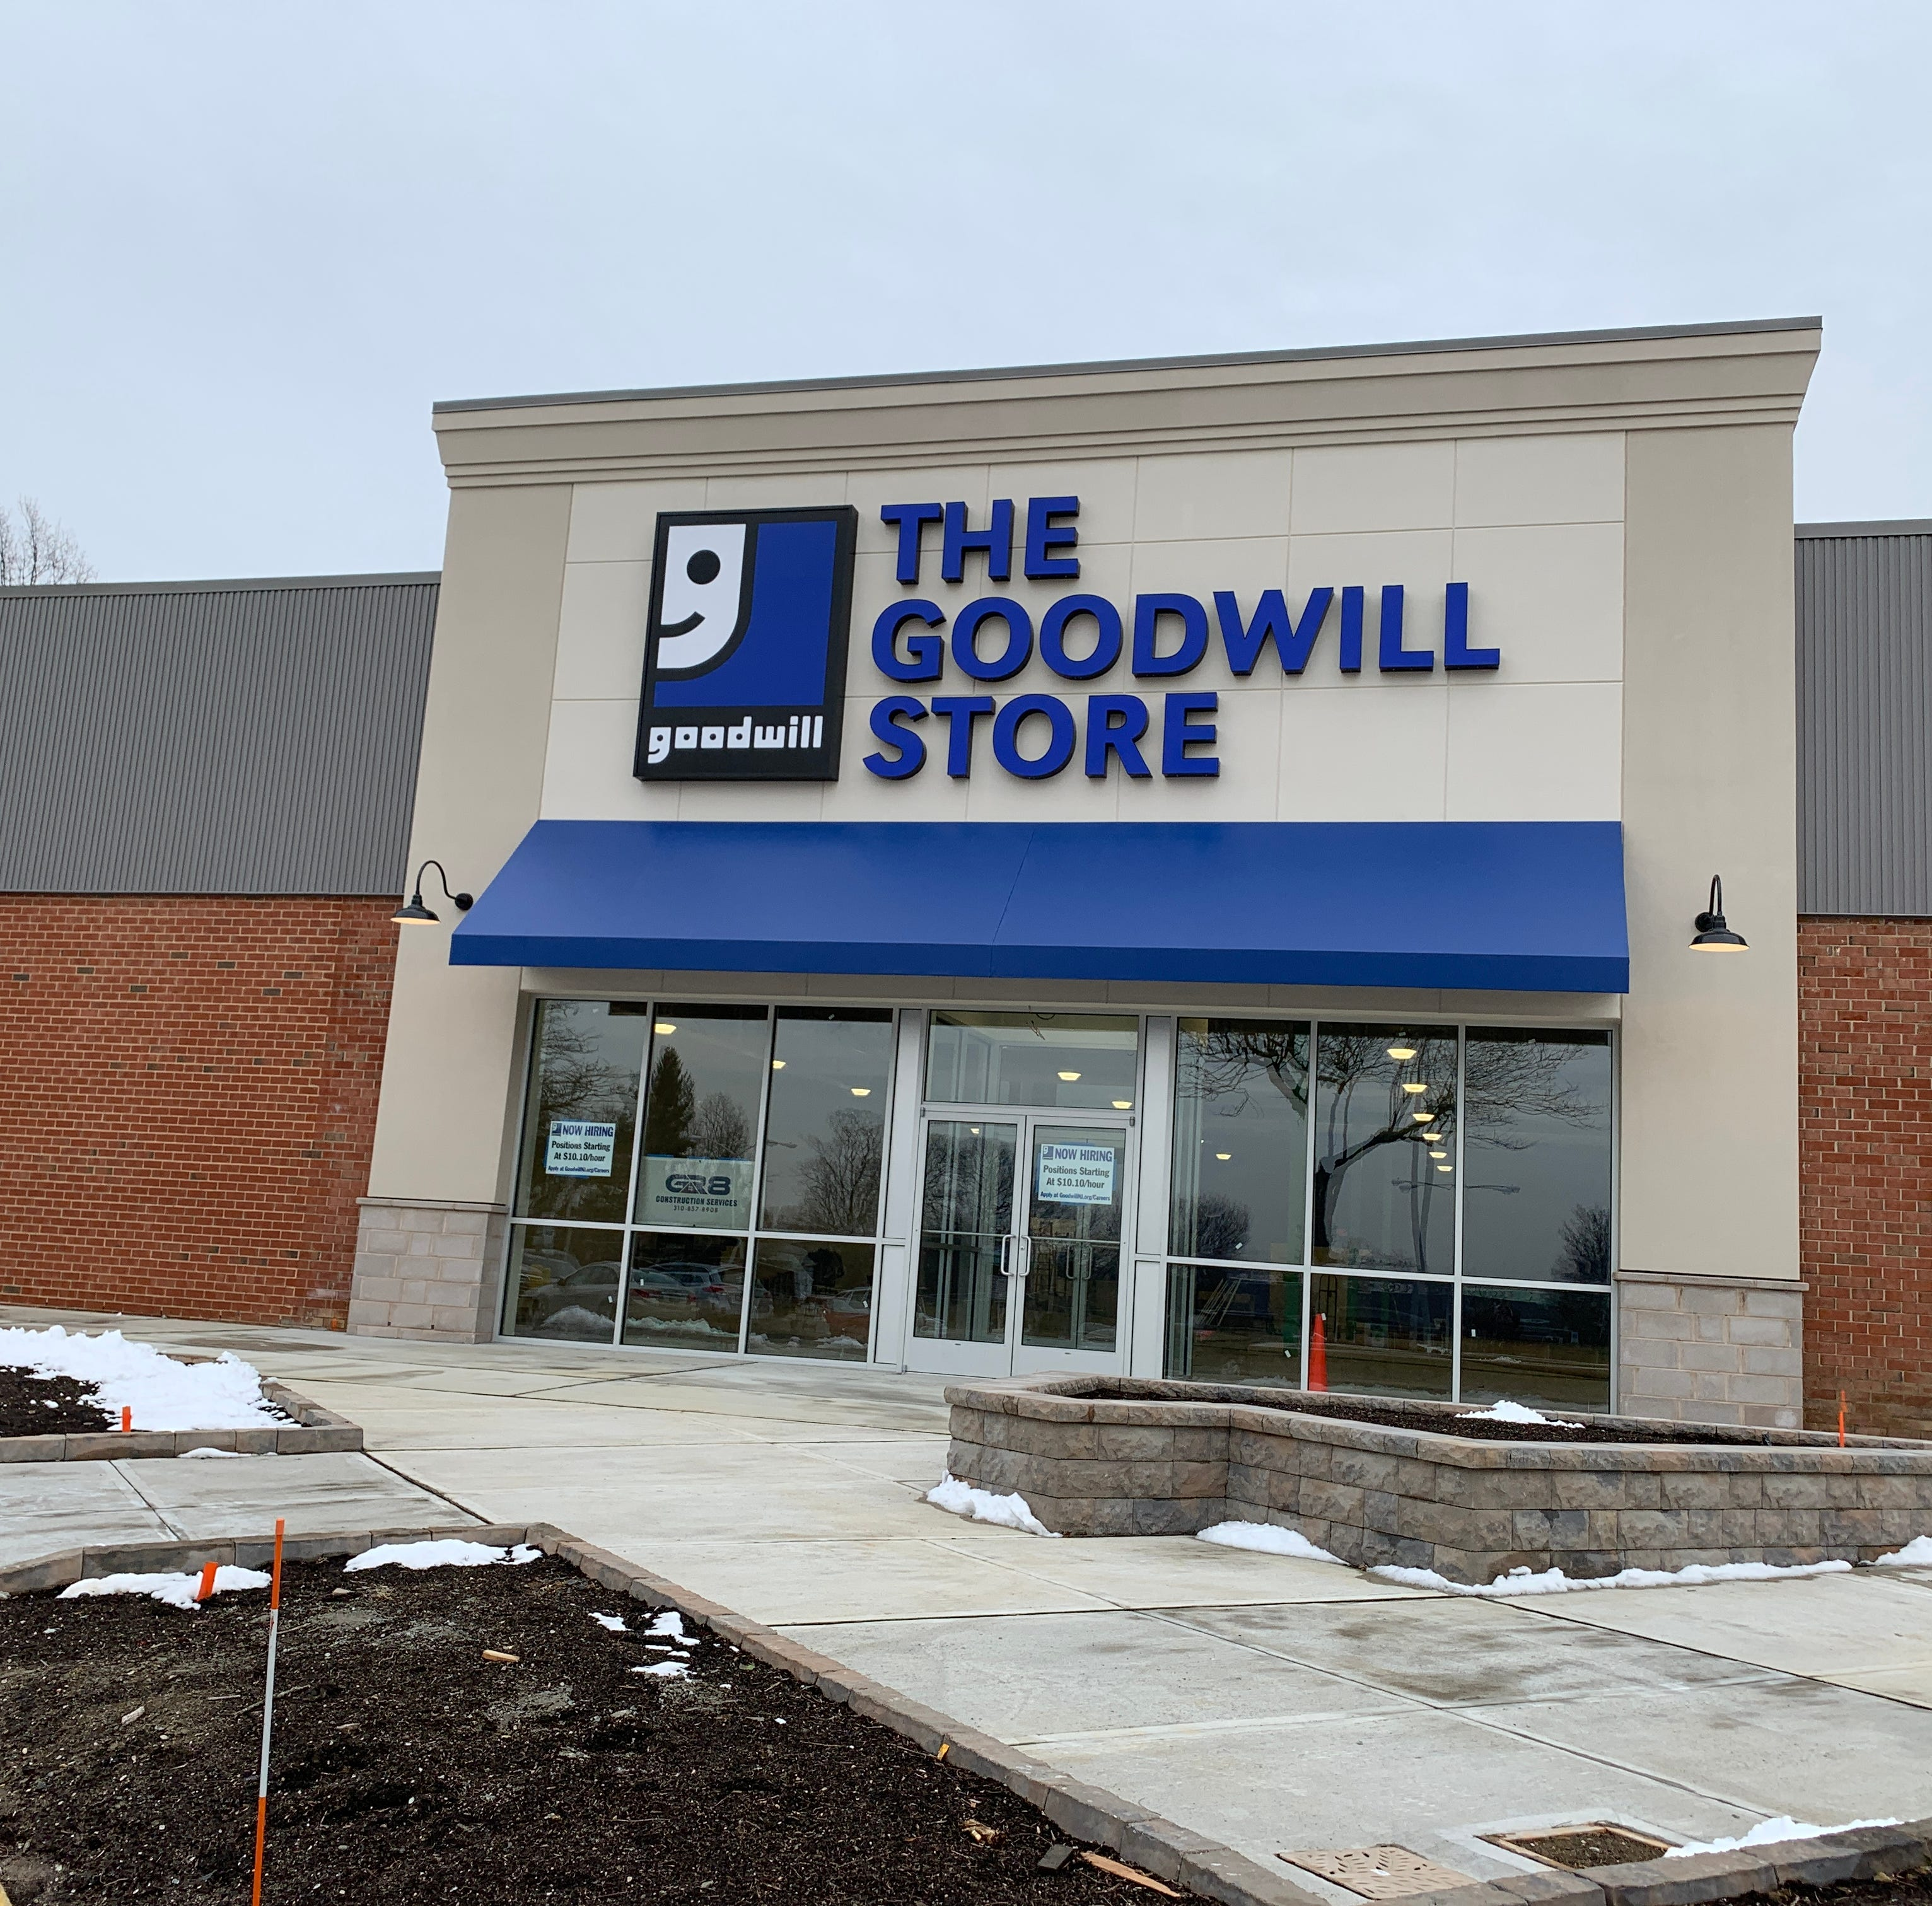 Goodwill about ready to open in former Middletown A&P